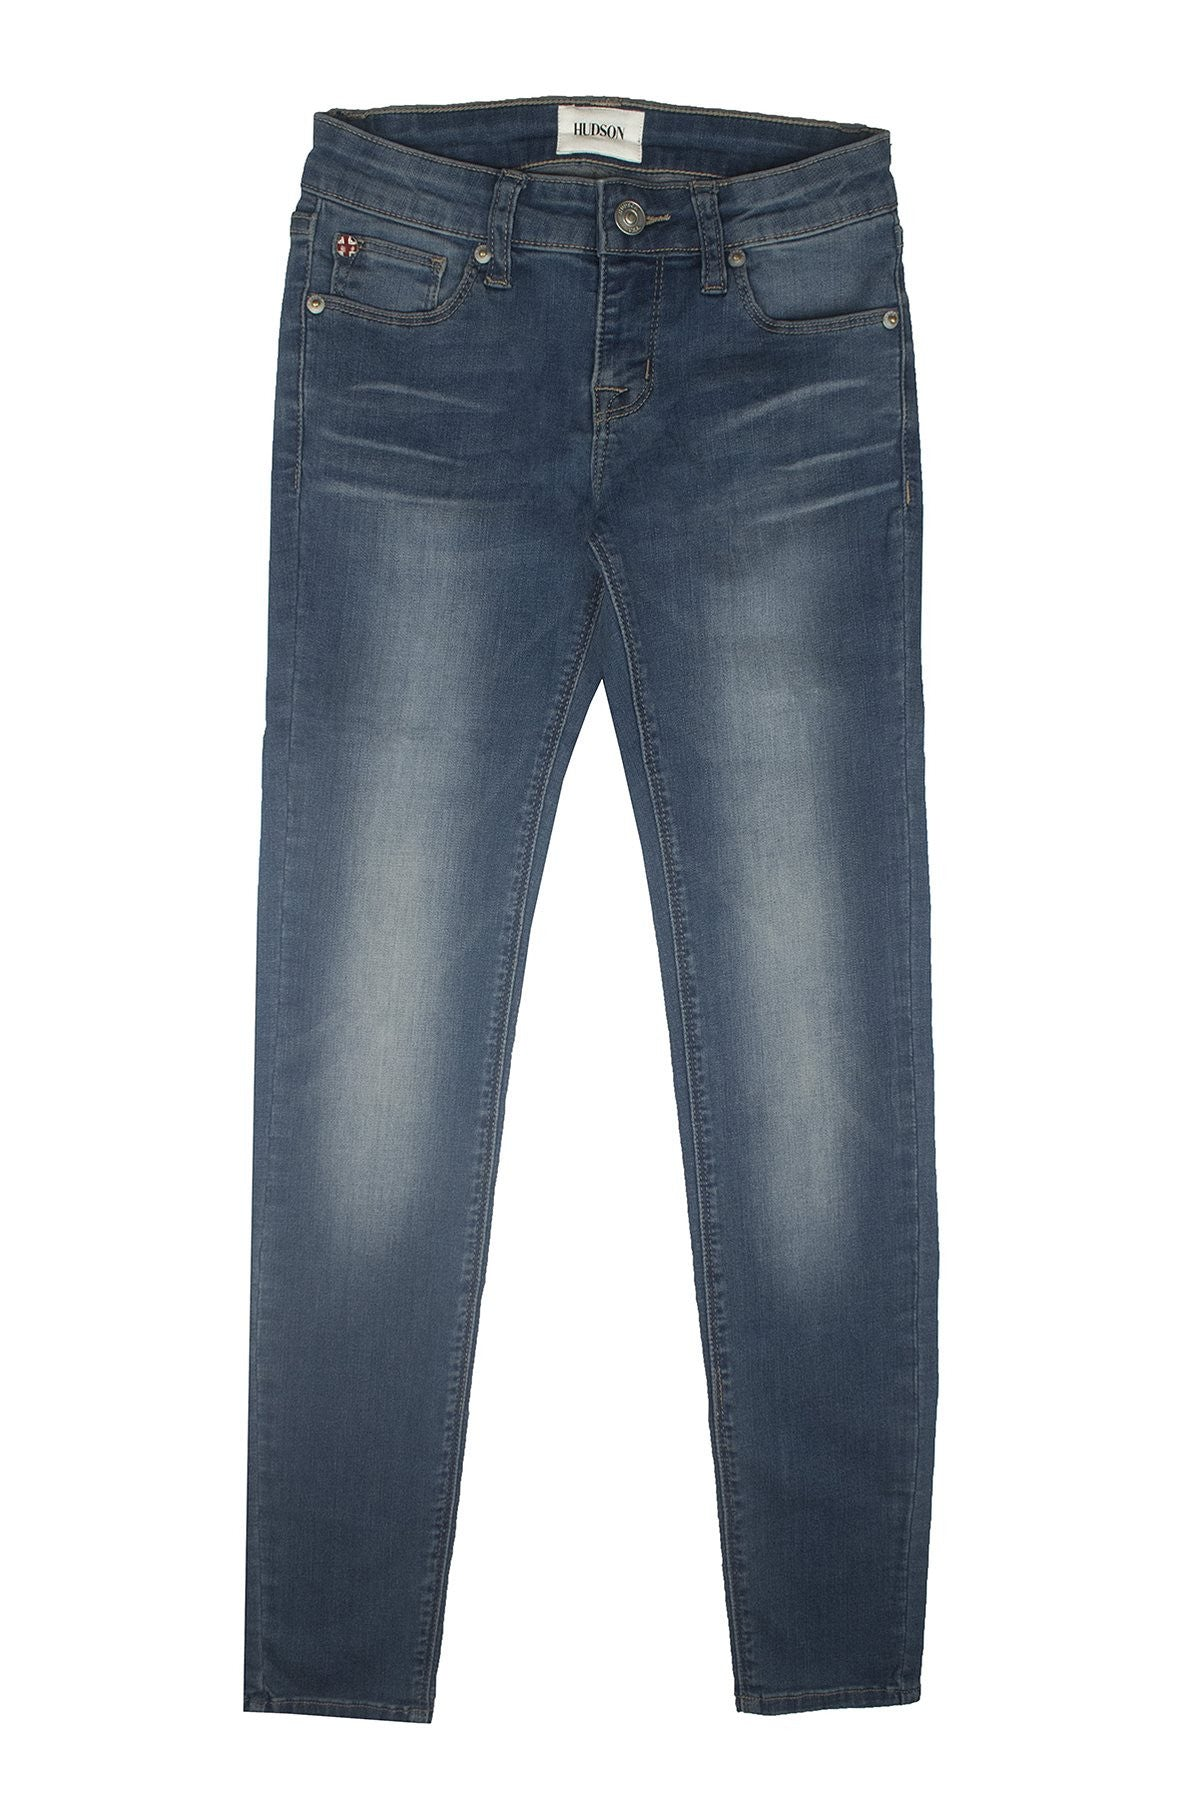 Hudson Jeans Feather Blue